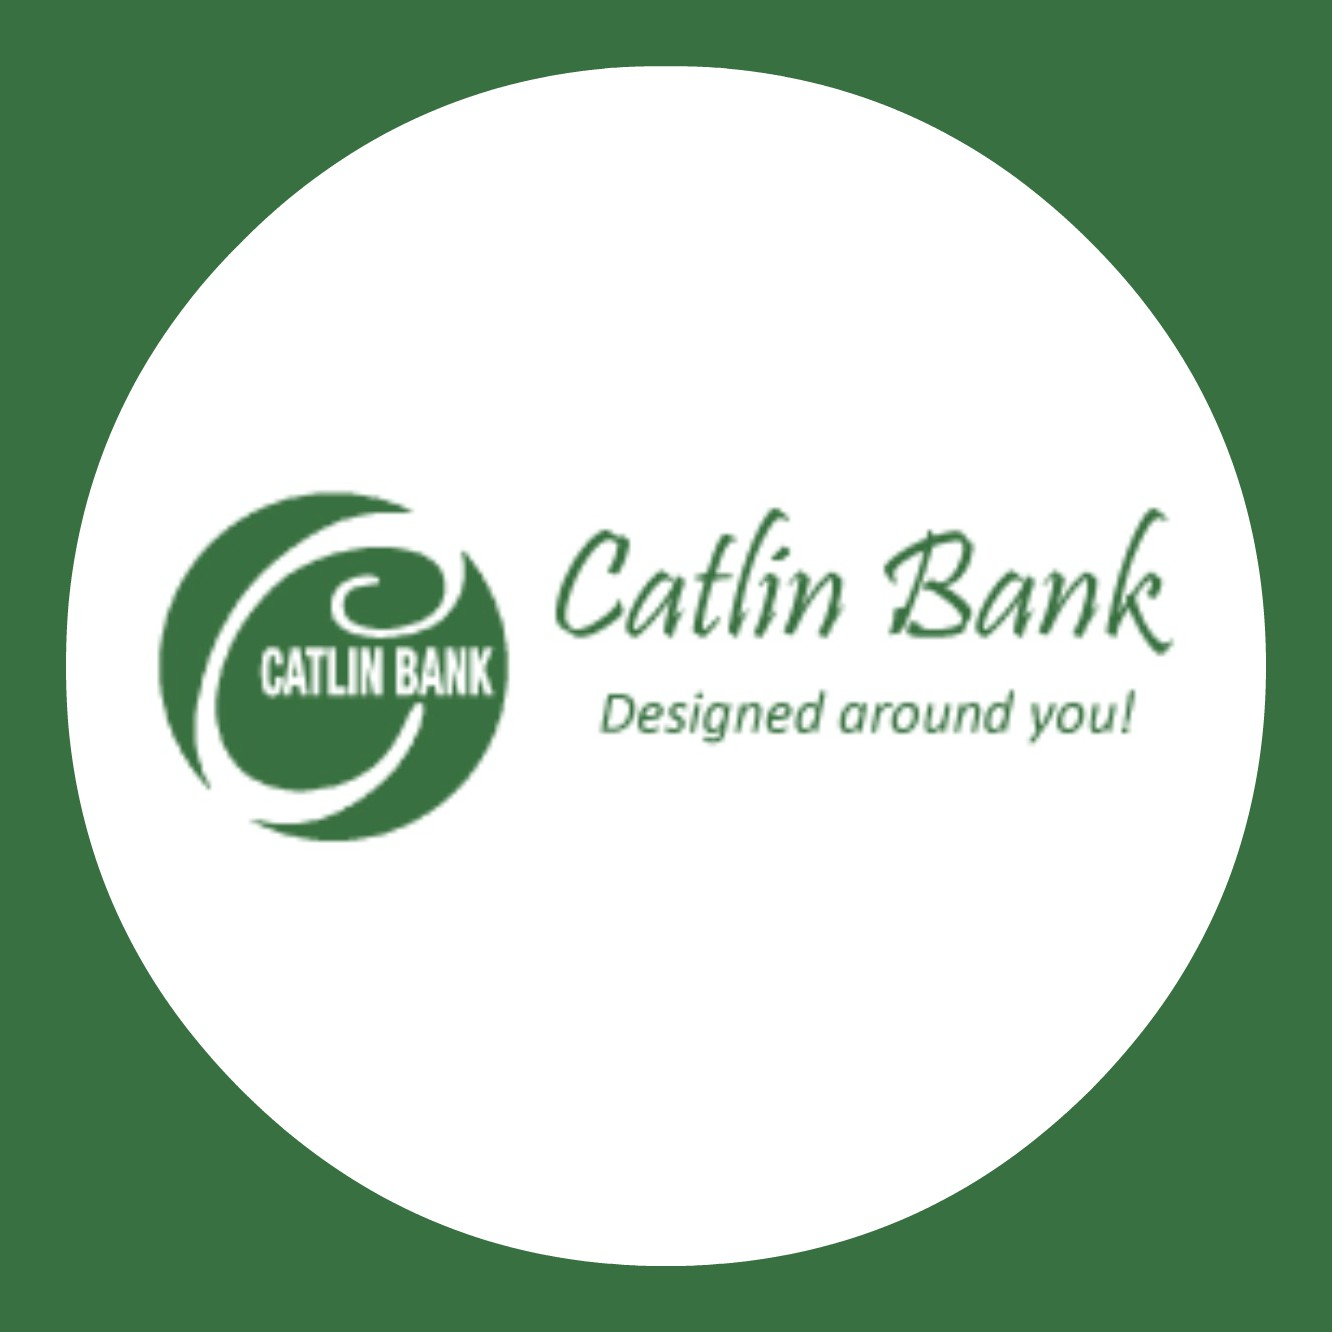 Catlin Bank